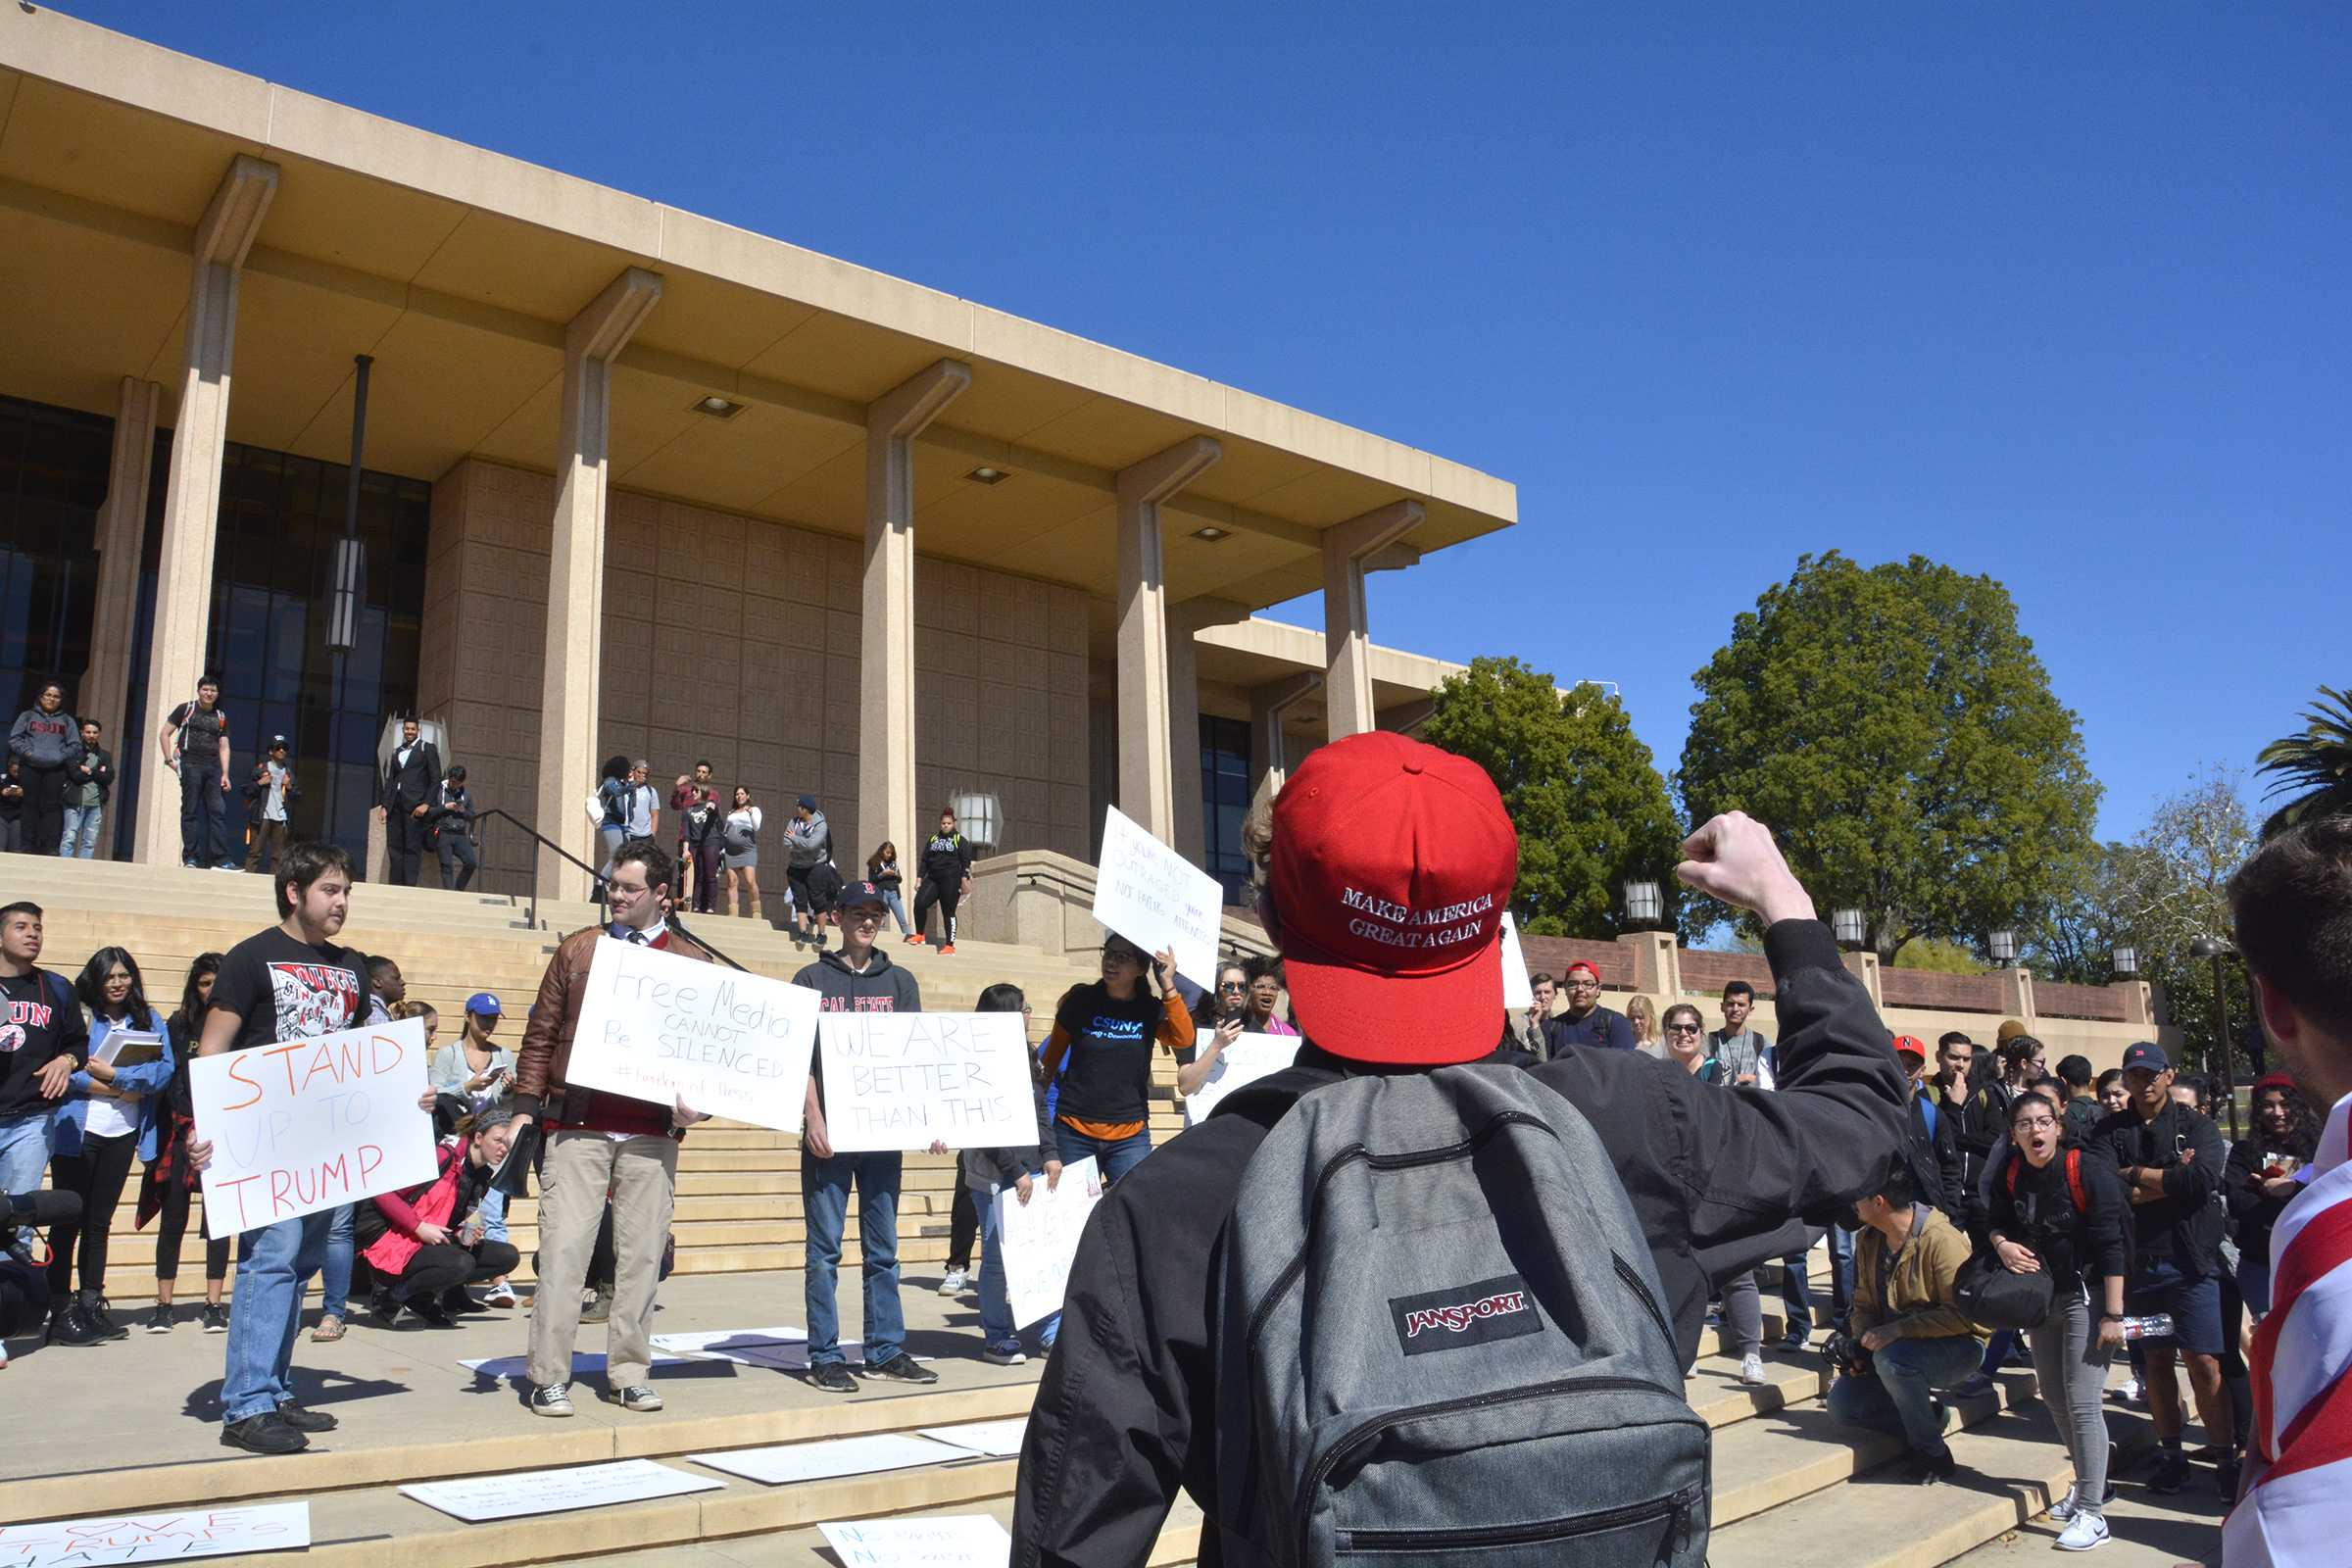 Trump supporters along with anti-trump protesters gather on the Oviatt lawn. Photo credit: Marja Ziemer